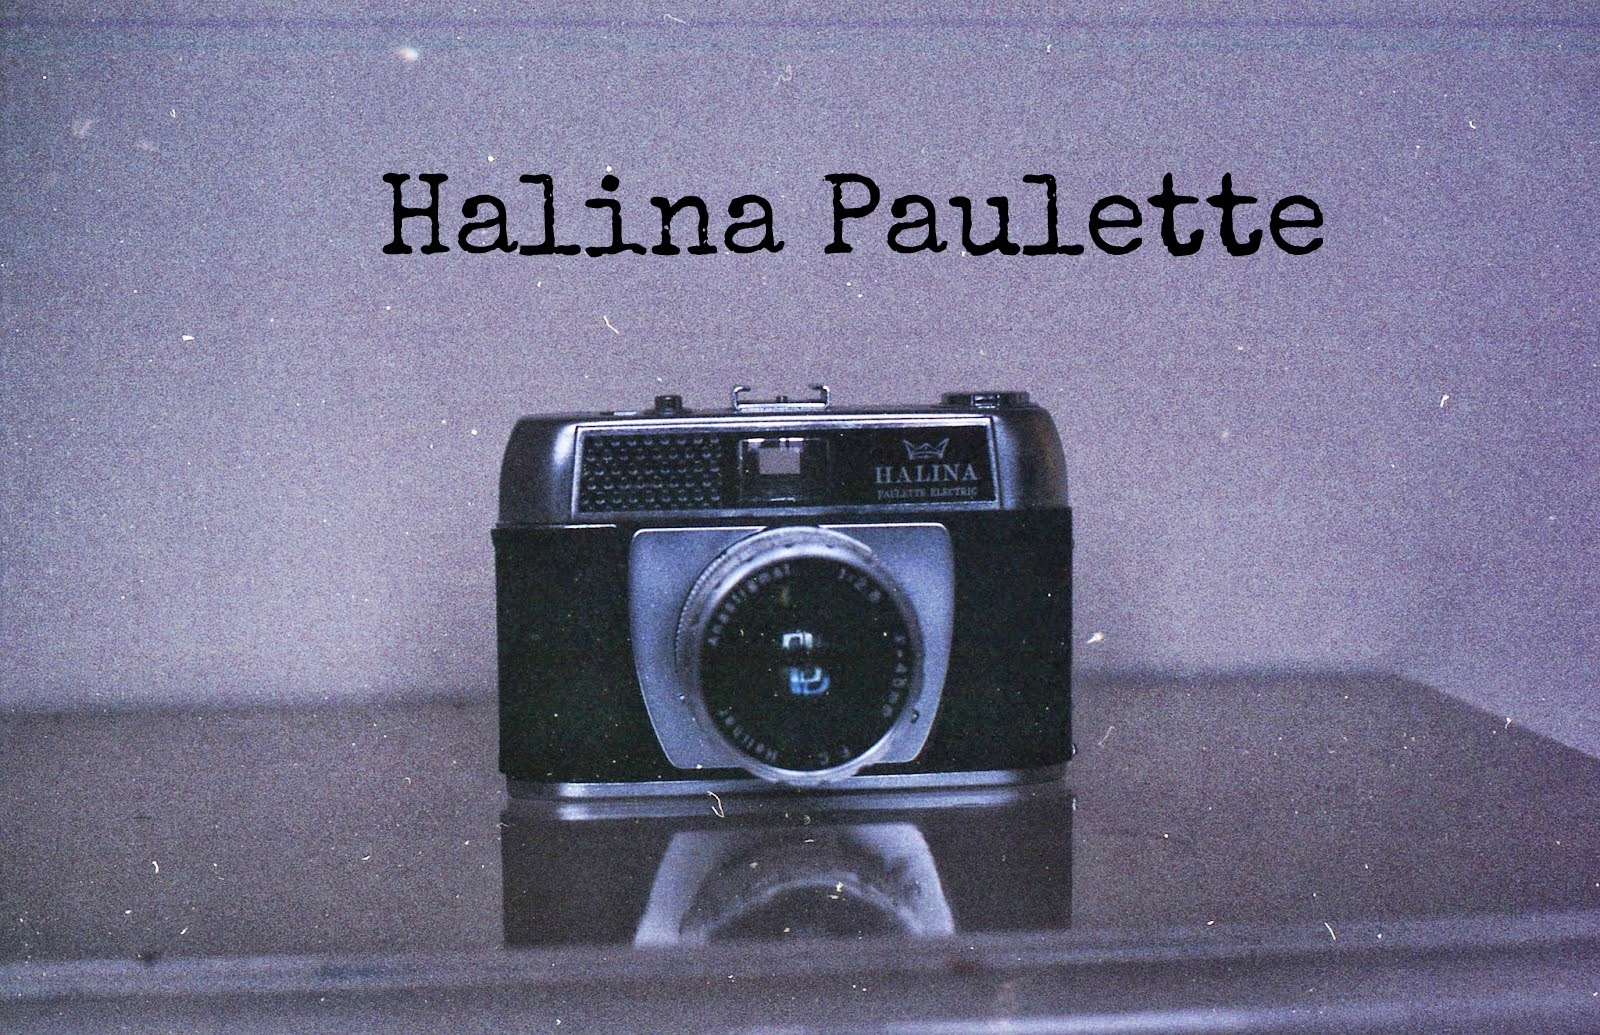 http://talesonfilm.blogspot.co.uk/2014/07/my-halina.html